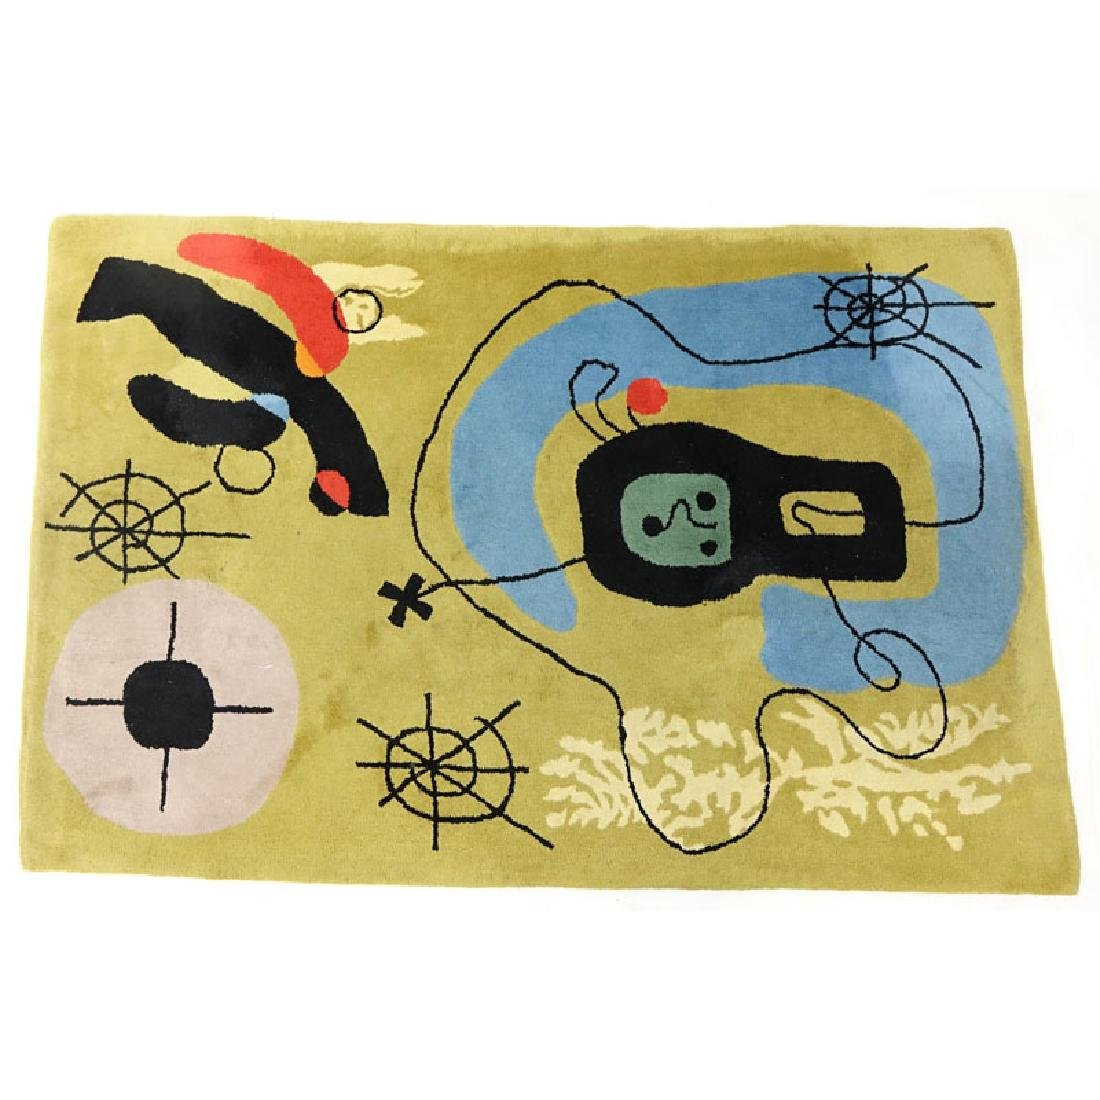 After Joan Miro, Spanish (1893-1983) Wool Rug/Tapestry